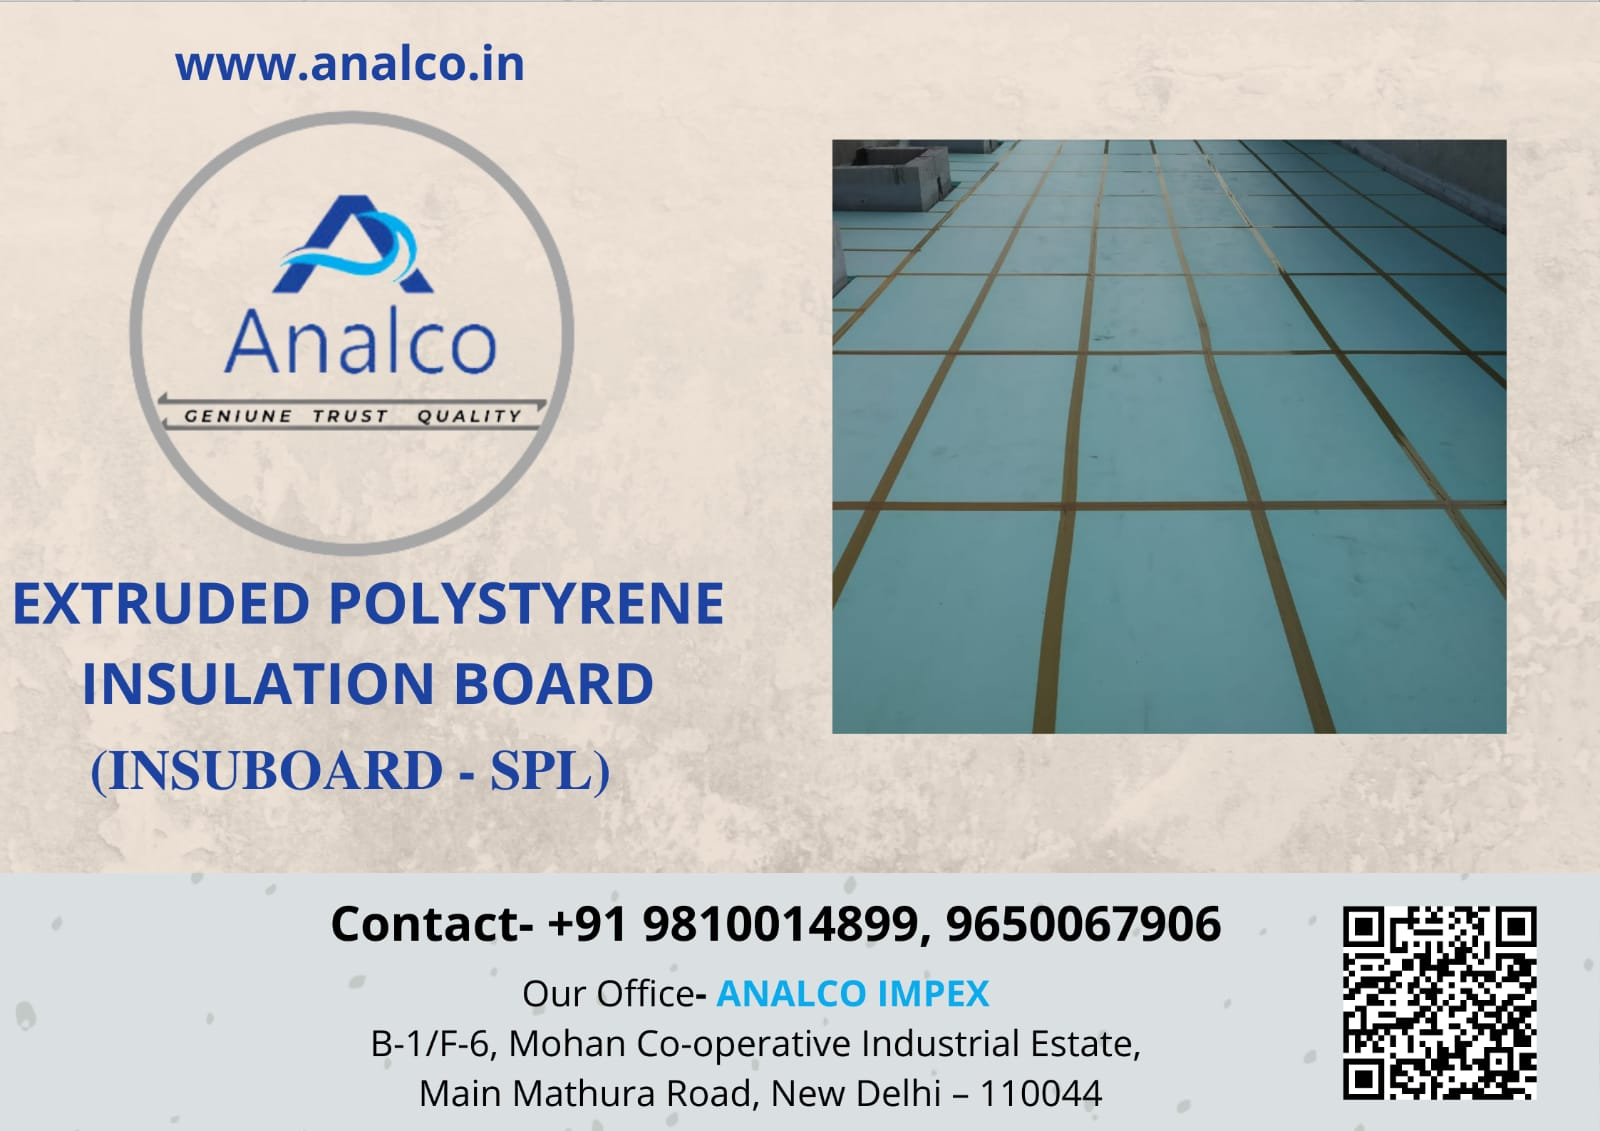 insubaord extruded polystyrene thermal insulation boards, extruded polystyrene board insulation manufacturers, XPS insulation foam board suppliers and dealers in India